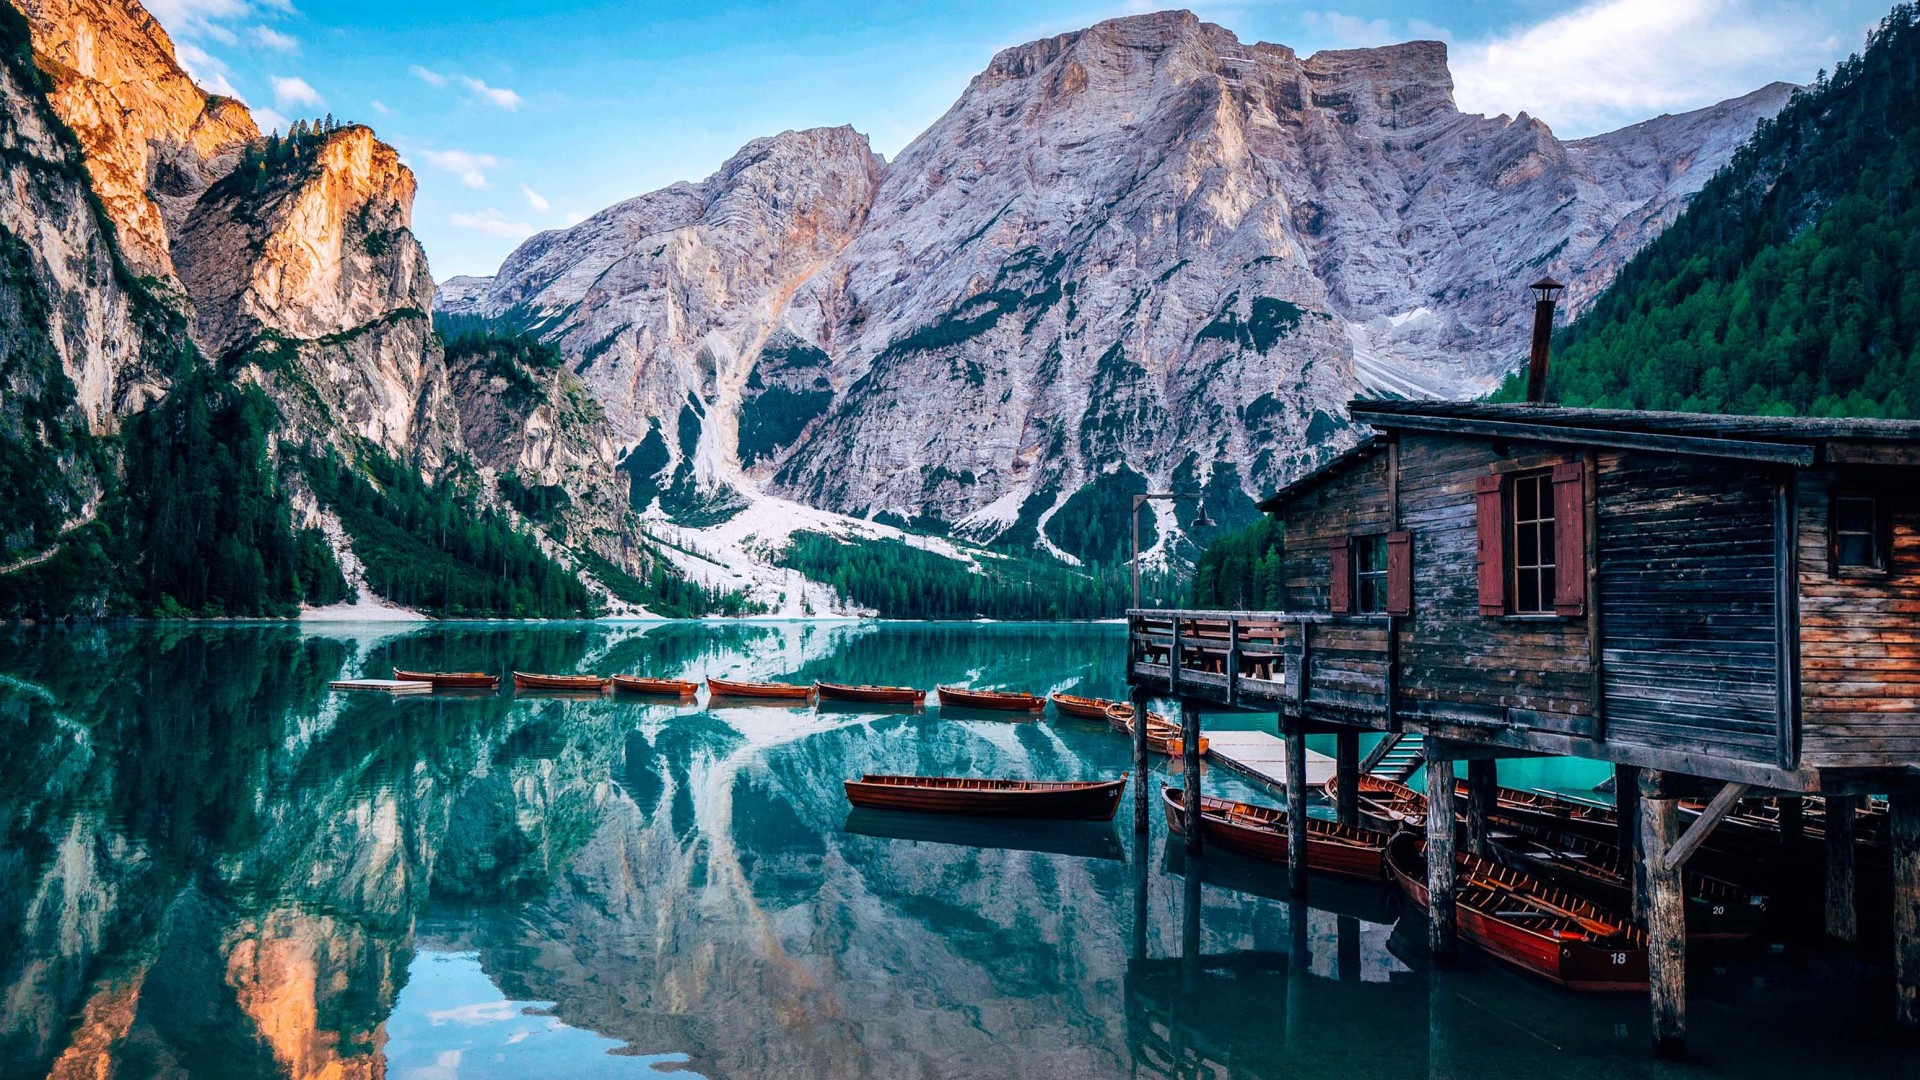 Wallpaper Pragser Wildsee Lake Italy Europe 4k Travel 20310